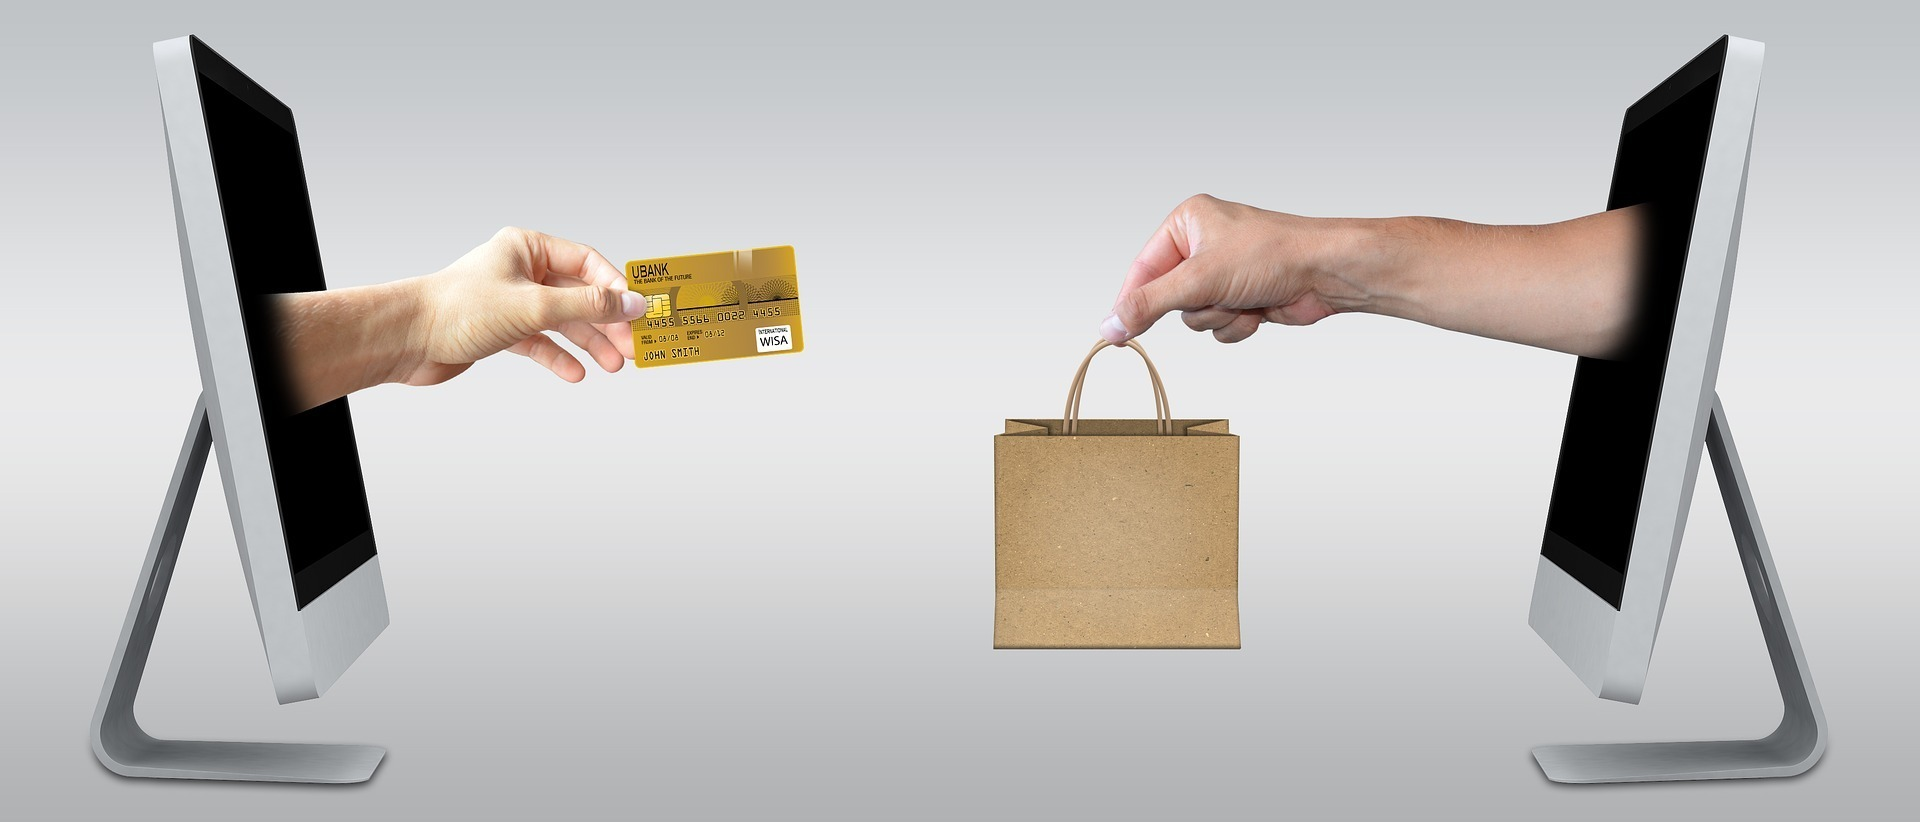 5 Marketing Tips To Boost Your Ecommerce Business